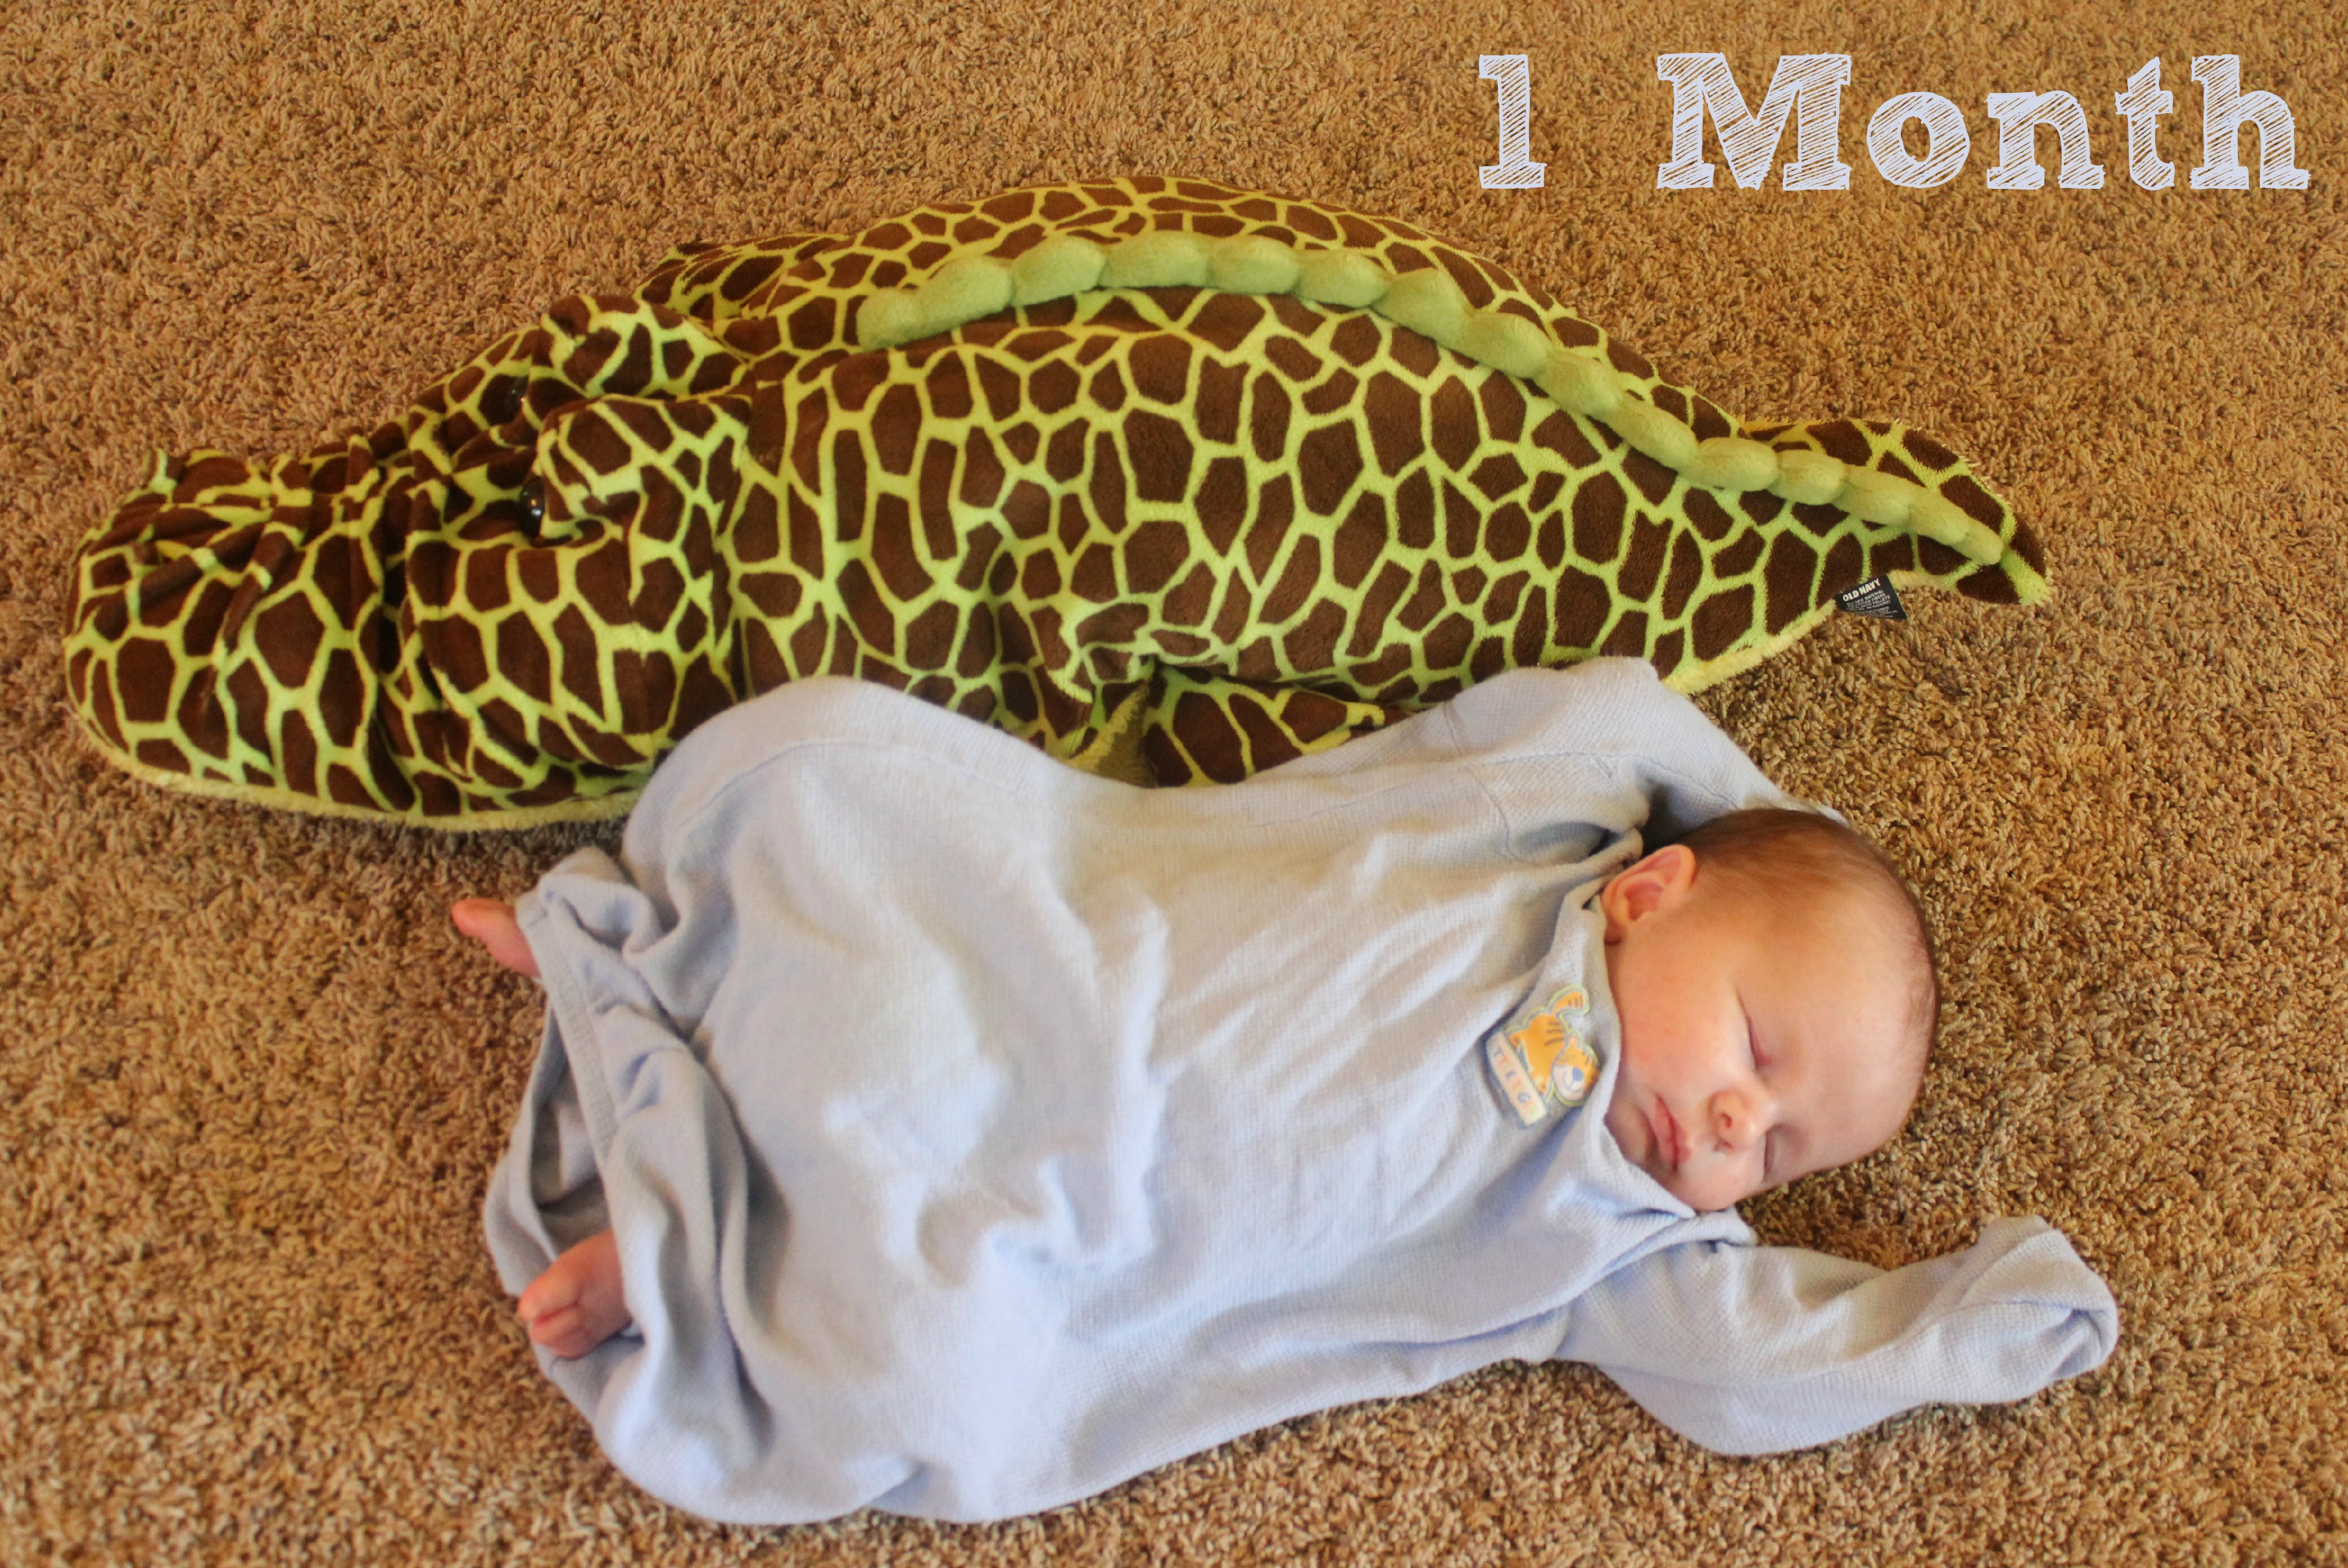 Baby Brother -1 month